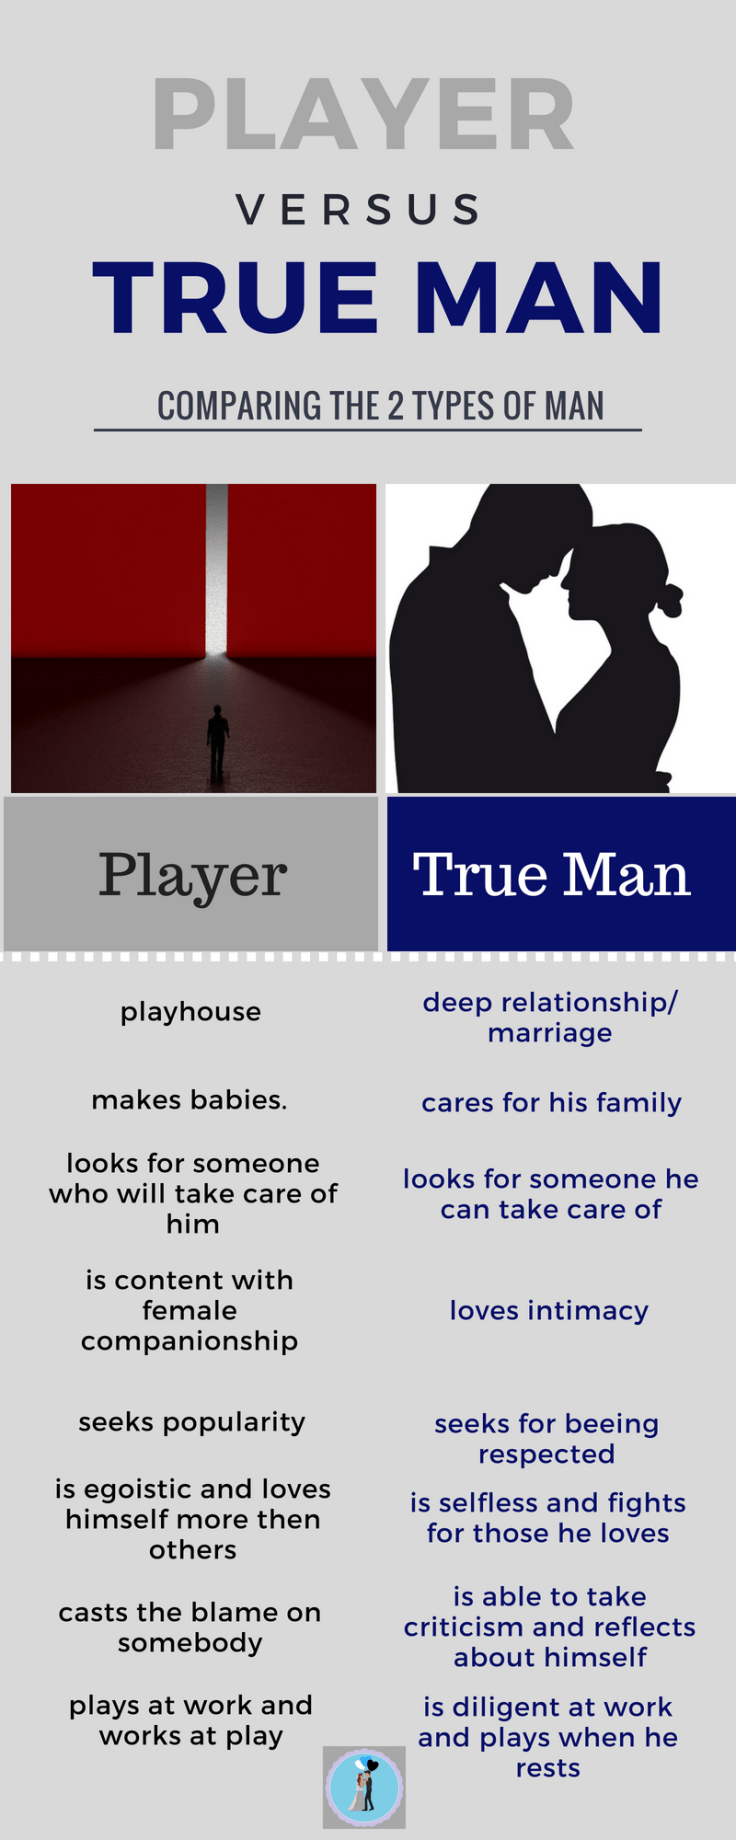 Player versus True Man